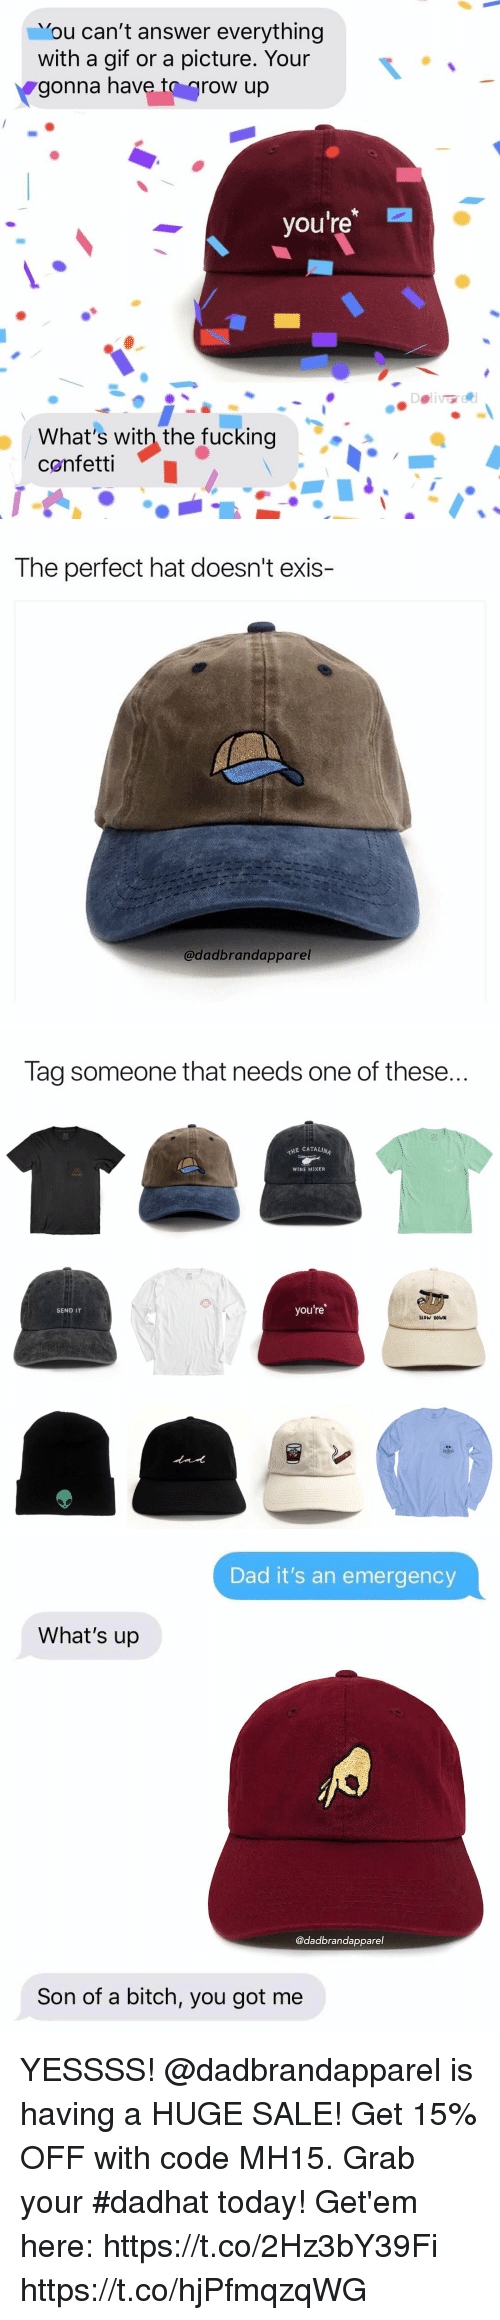 catalina wine mixer: Vou can't answer everything  with a gif or a picture. Your  gonna have to grow up  you're  What's with the fucking  confettiI   The perfect hat doesn't exis-  @dadbrandapparel   Tag someone that needs one of these..  E CATALINA  WINE MIXER  you're  SEND IT  SLOW DOWN   Dad it's an emergency  What's up  @dadbrandapparel  Son of a bitch, you got me YESSSS! @dadbrandapparel is having a HUGE SALE! Get 15% OFF with  code MH15. Grab your #dadhat today! Get'em here: https://t.co/2Hz3bY39Fi https://t.co/hjPfmqzqWG